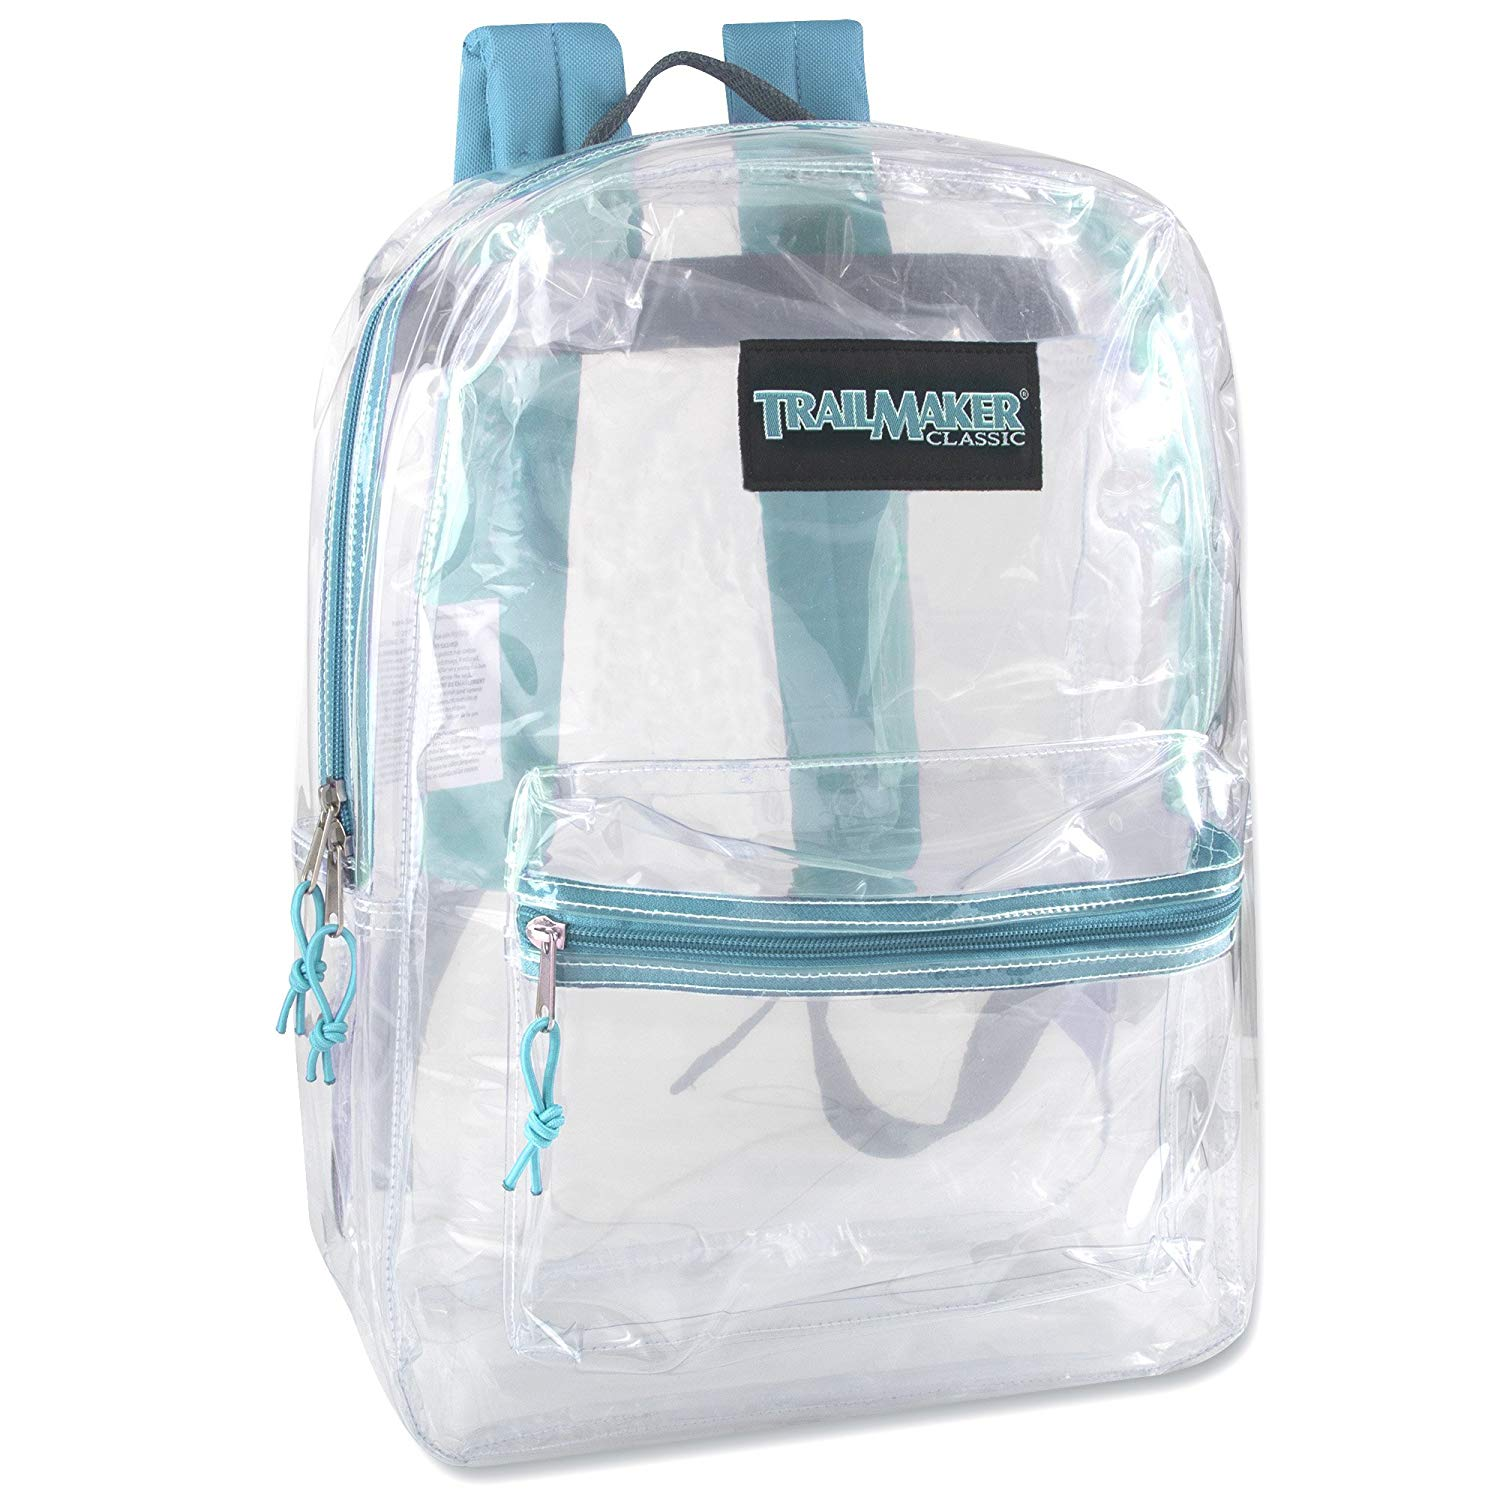 Trail Maker Clear Backpack With Reinforced Strap